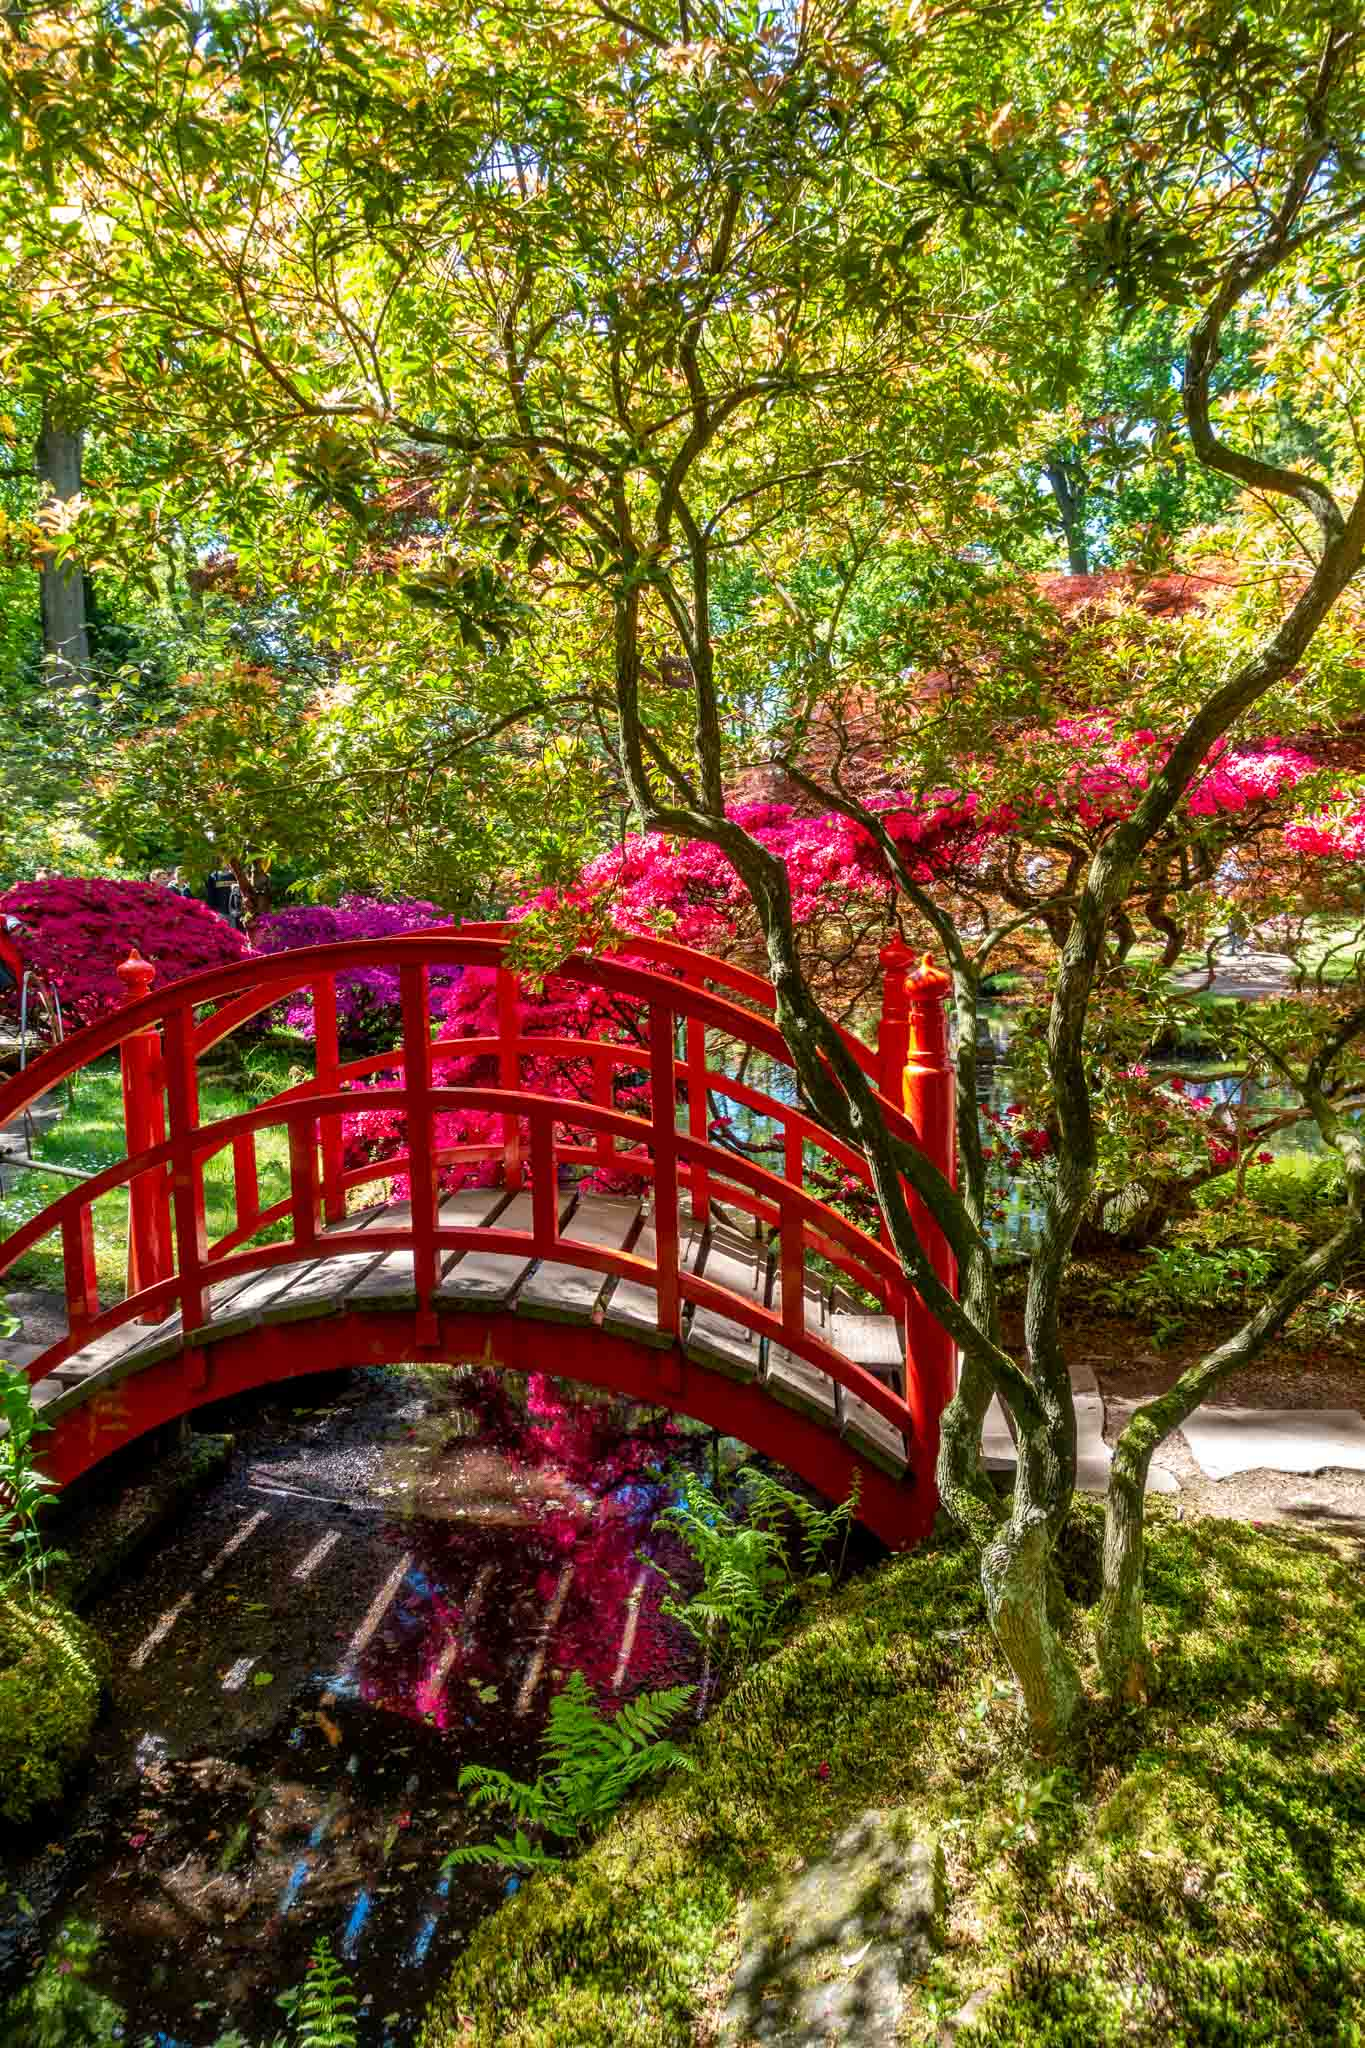 Red wooden bridge over a stream surrounded by trees and flowers